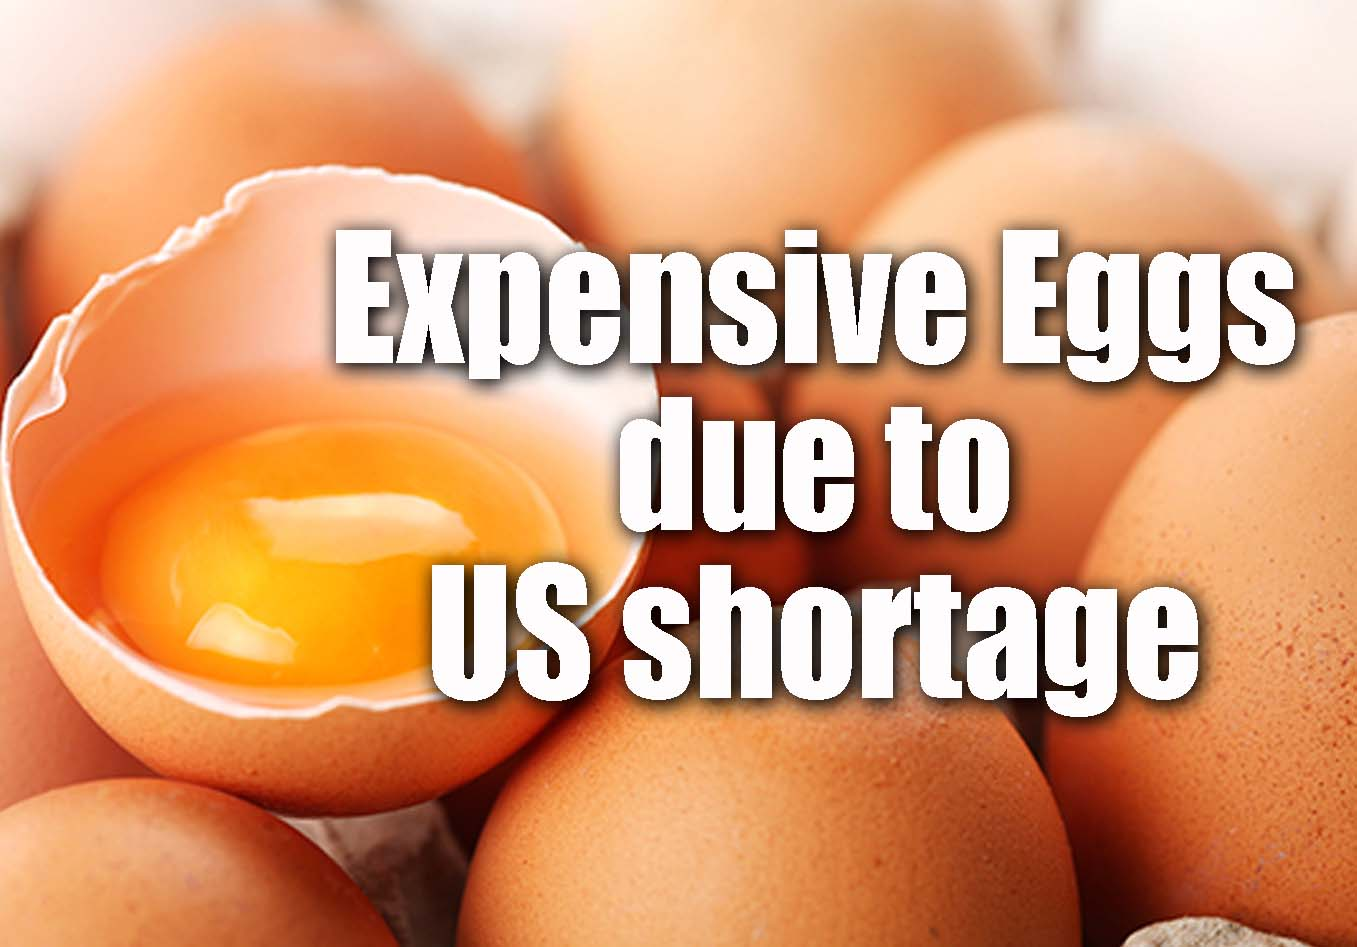 Eggs Expensive